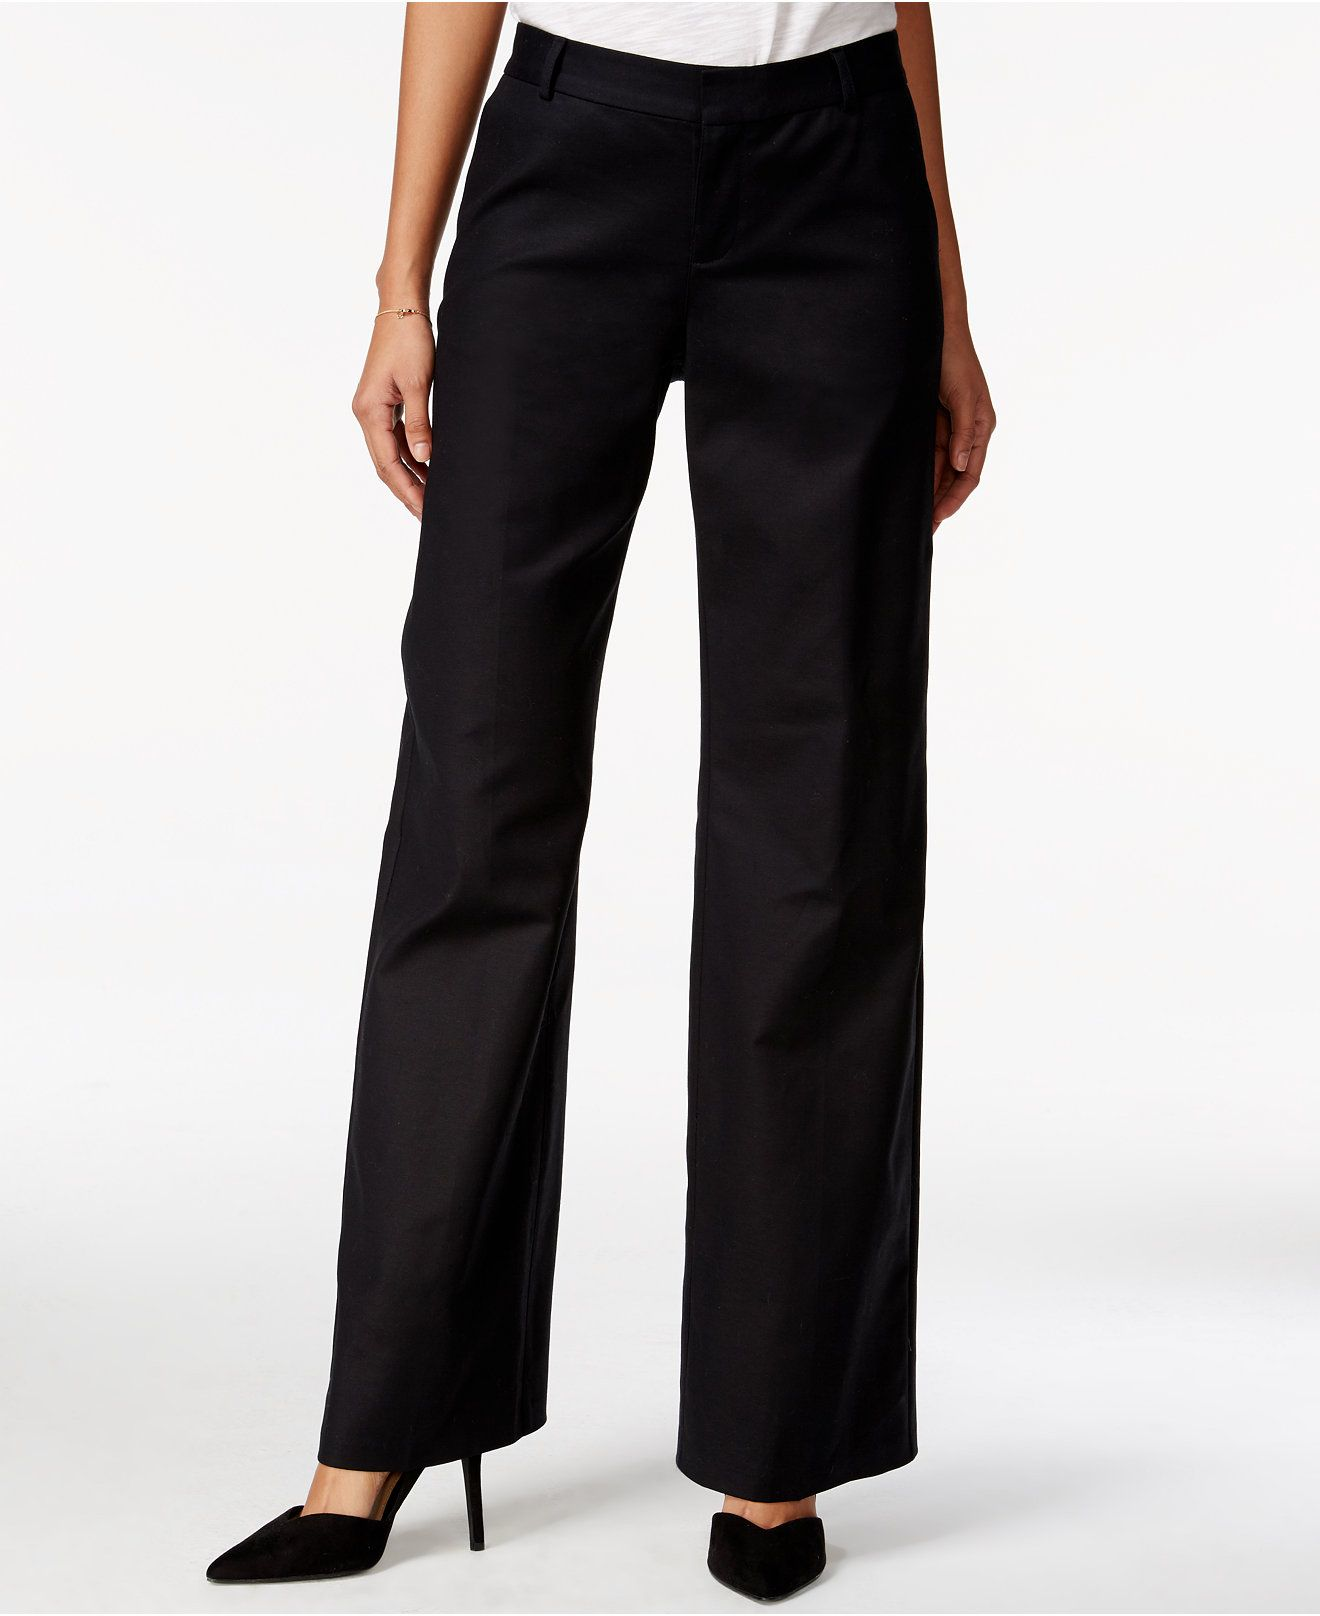 Maison Jules Solid WideLeg Pants, Only at Macy's Maison